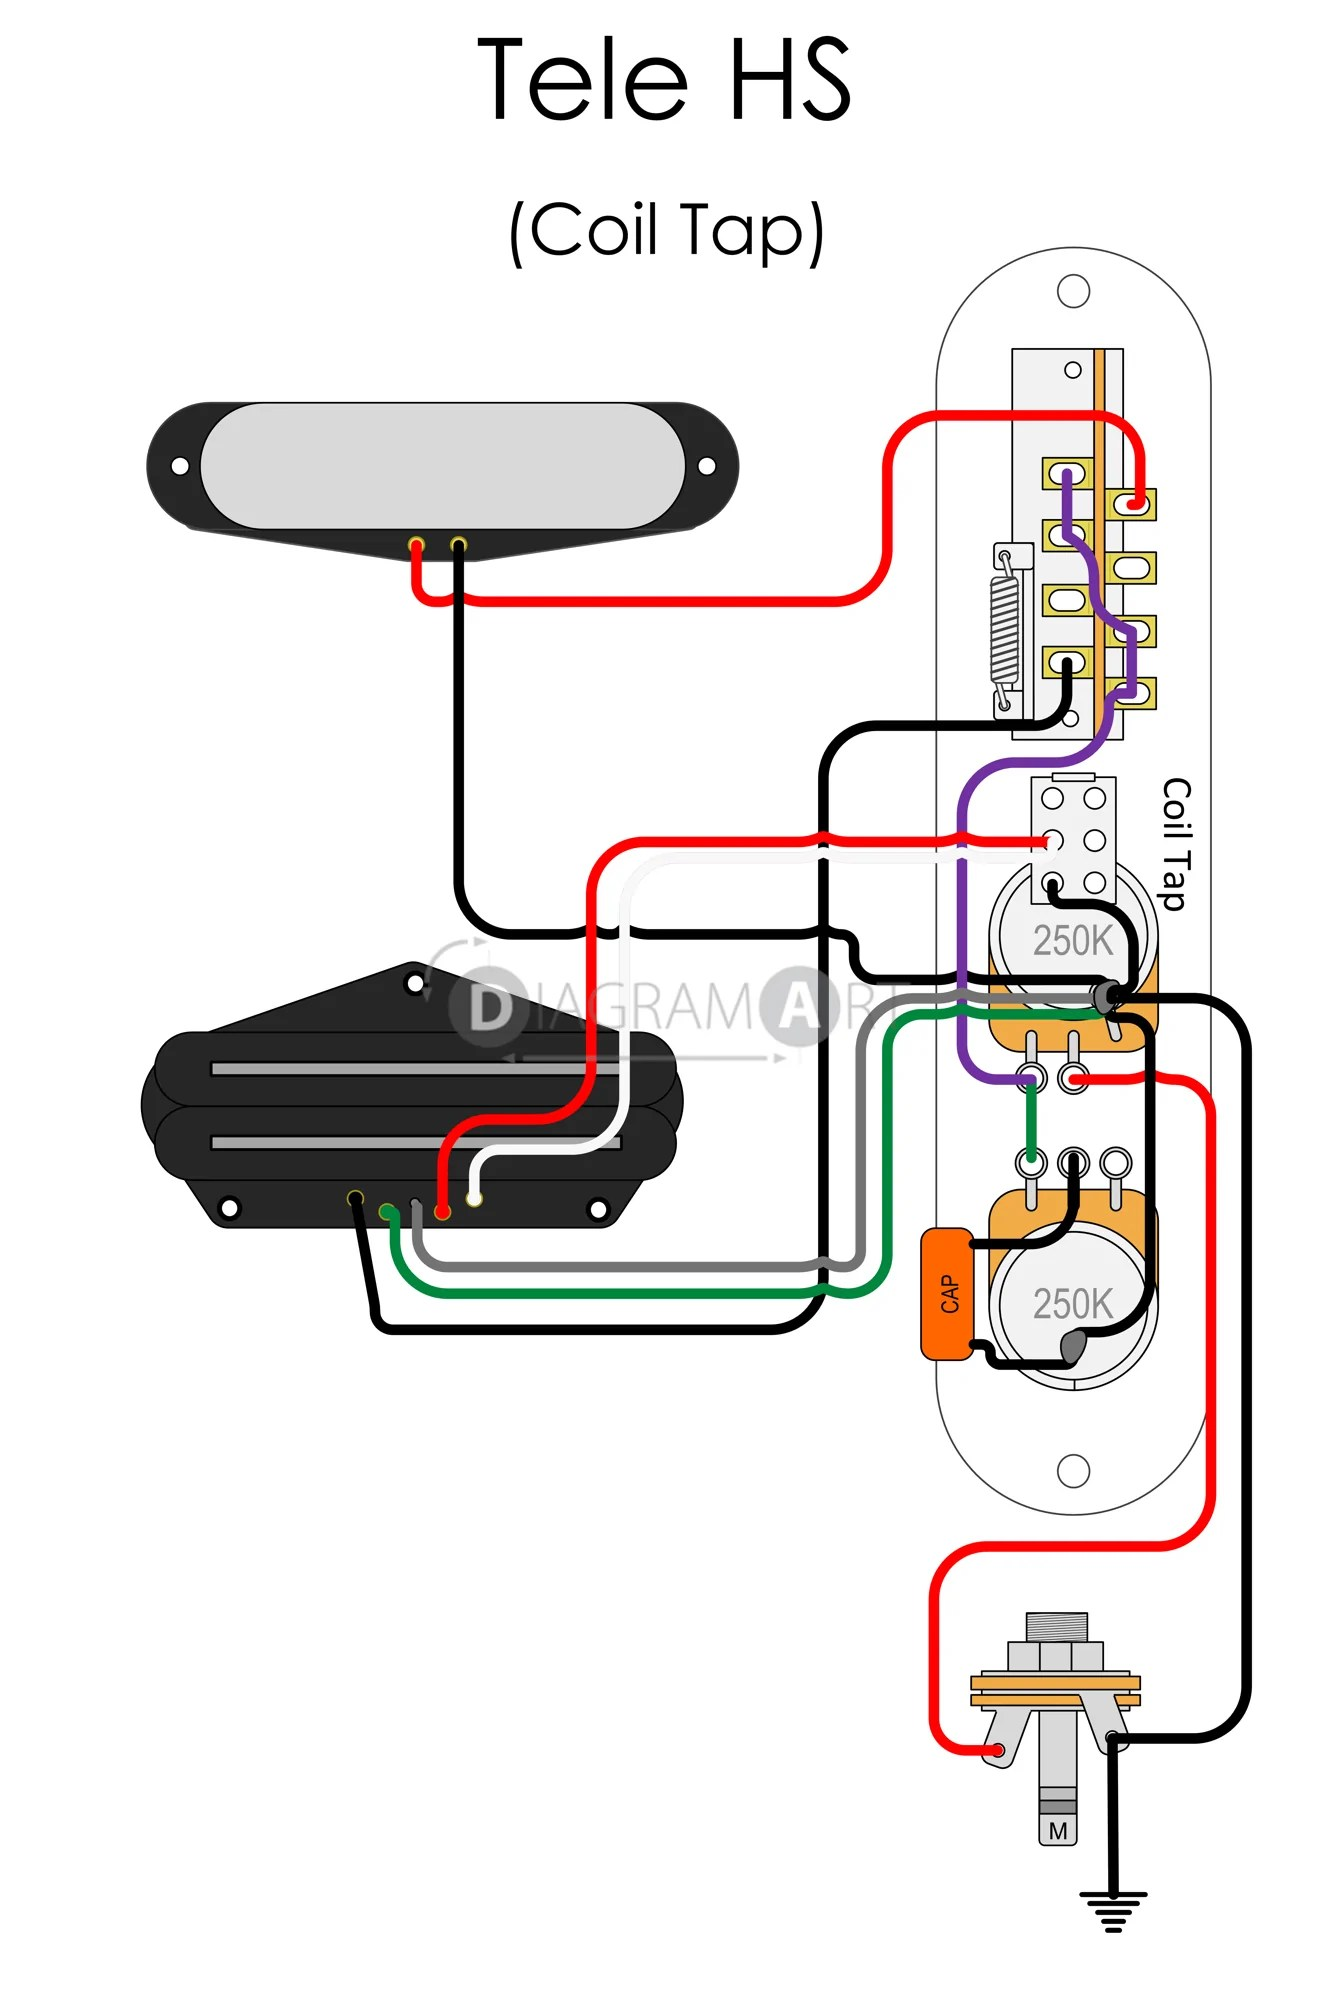 hight resolution of electric guitar wiring tele hs coil tap electric circuit dimarzio coil tap wiring diagram coil tap diagram